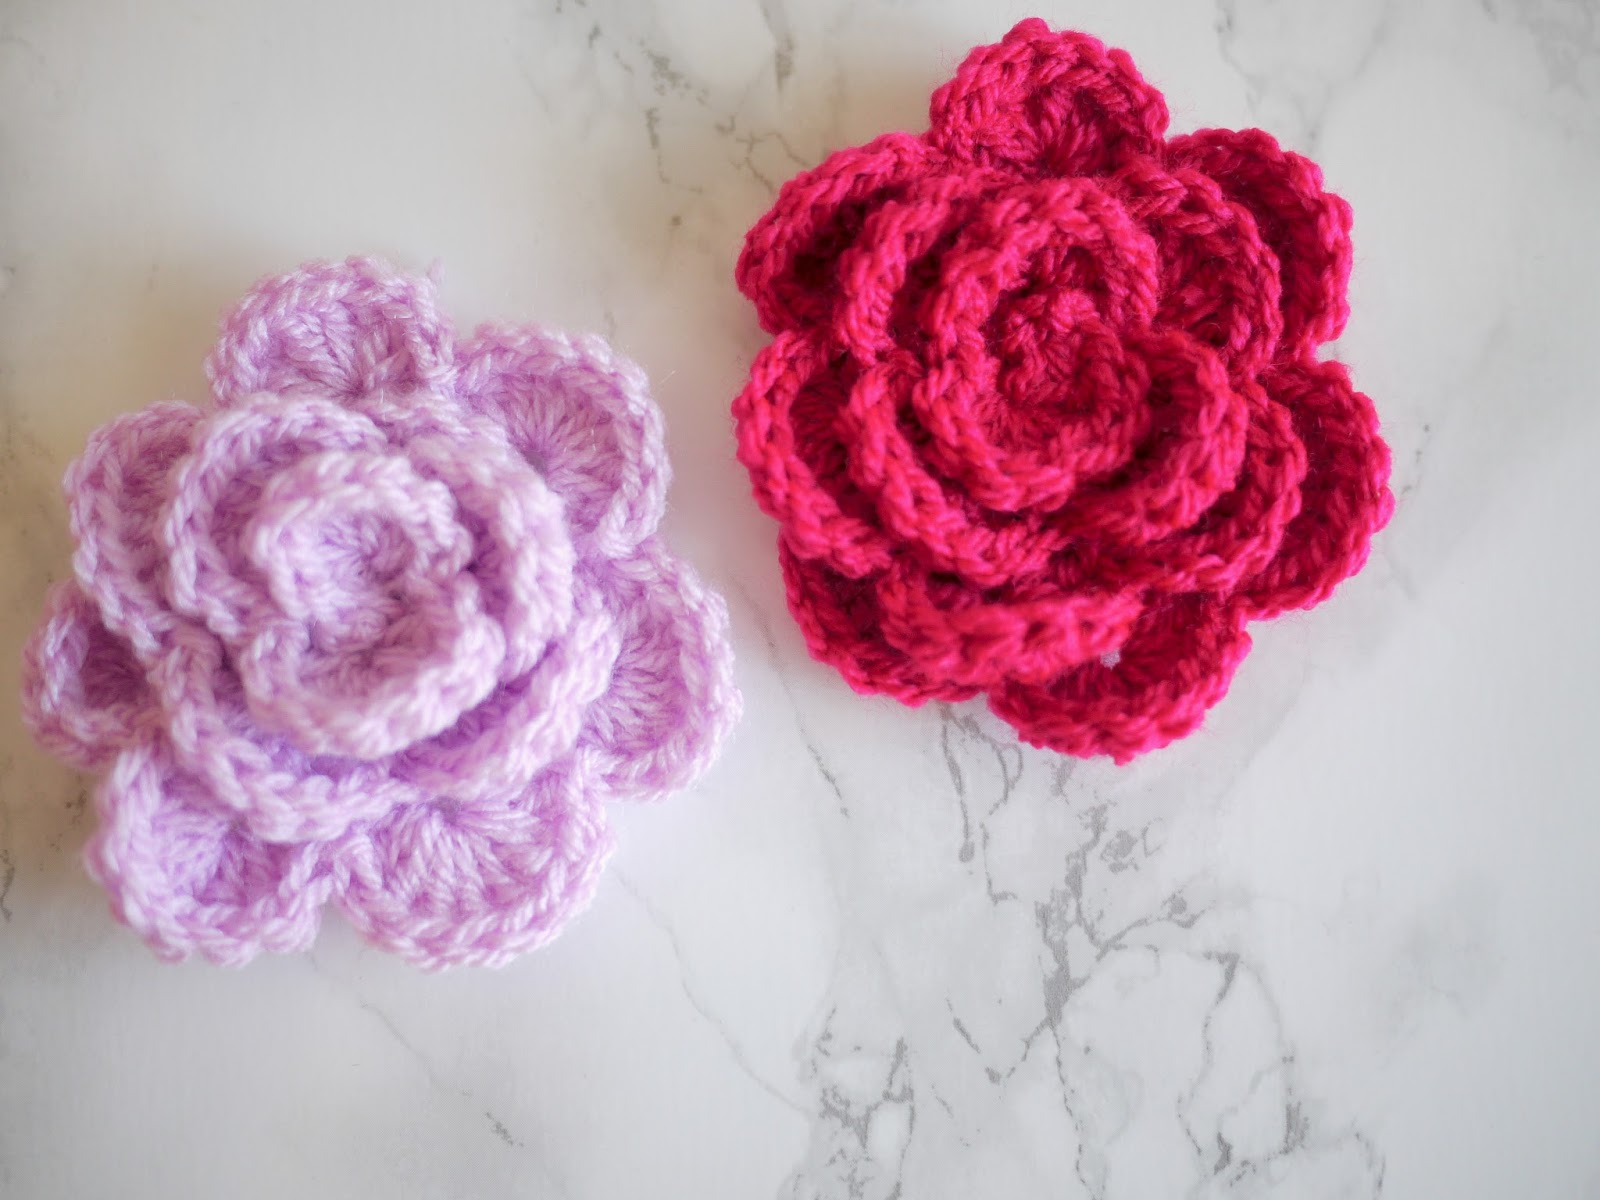 Crochet rose tutorial - Bella Coco by Sarah-Jayne